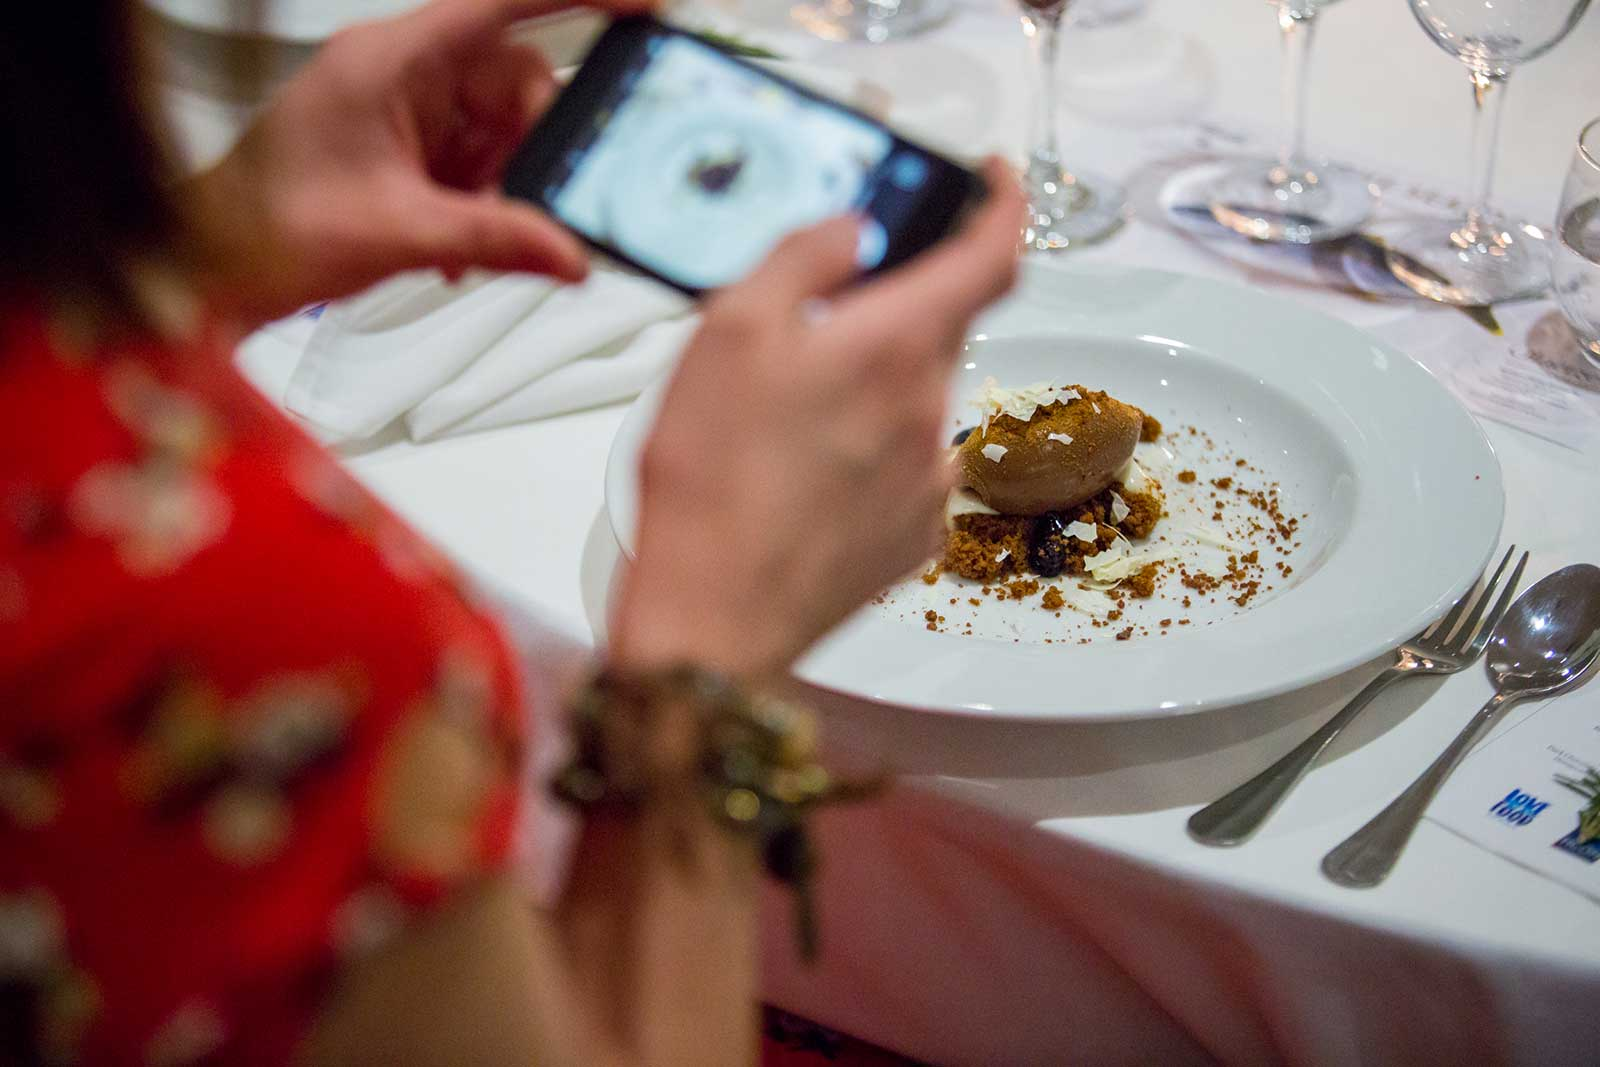 a girl in a red dress photographs her food, the photo focuses on the food and her camera is blurred